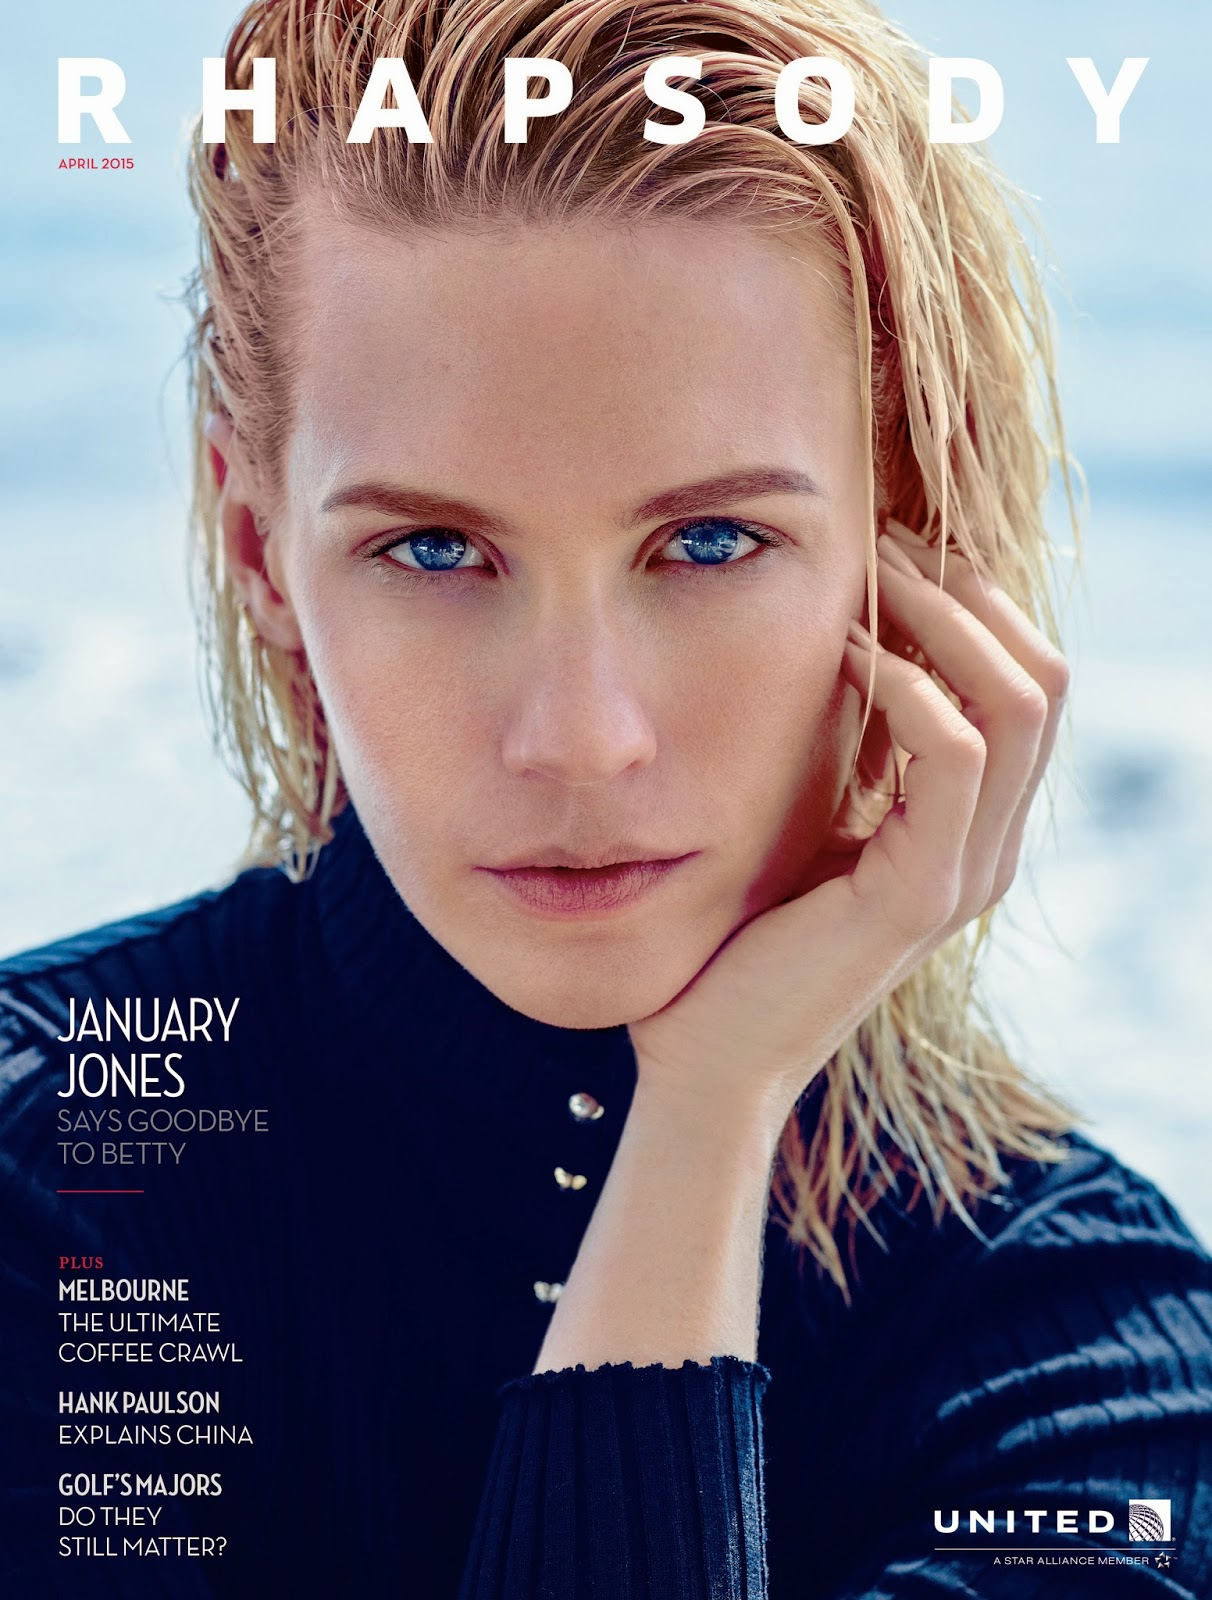 Actress @ January Jones - Rhapsody, April 2015